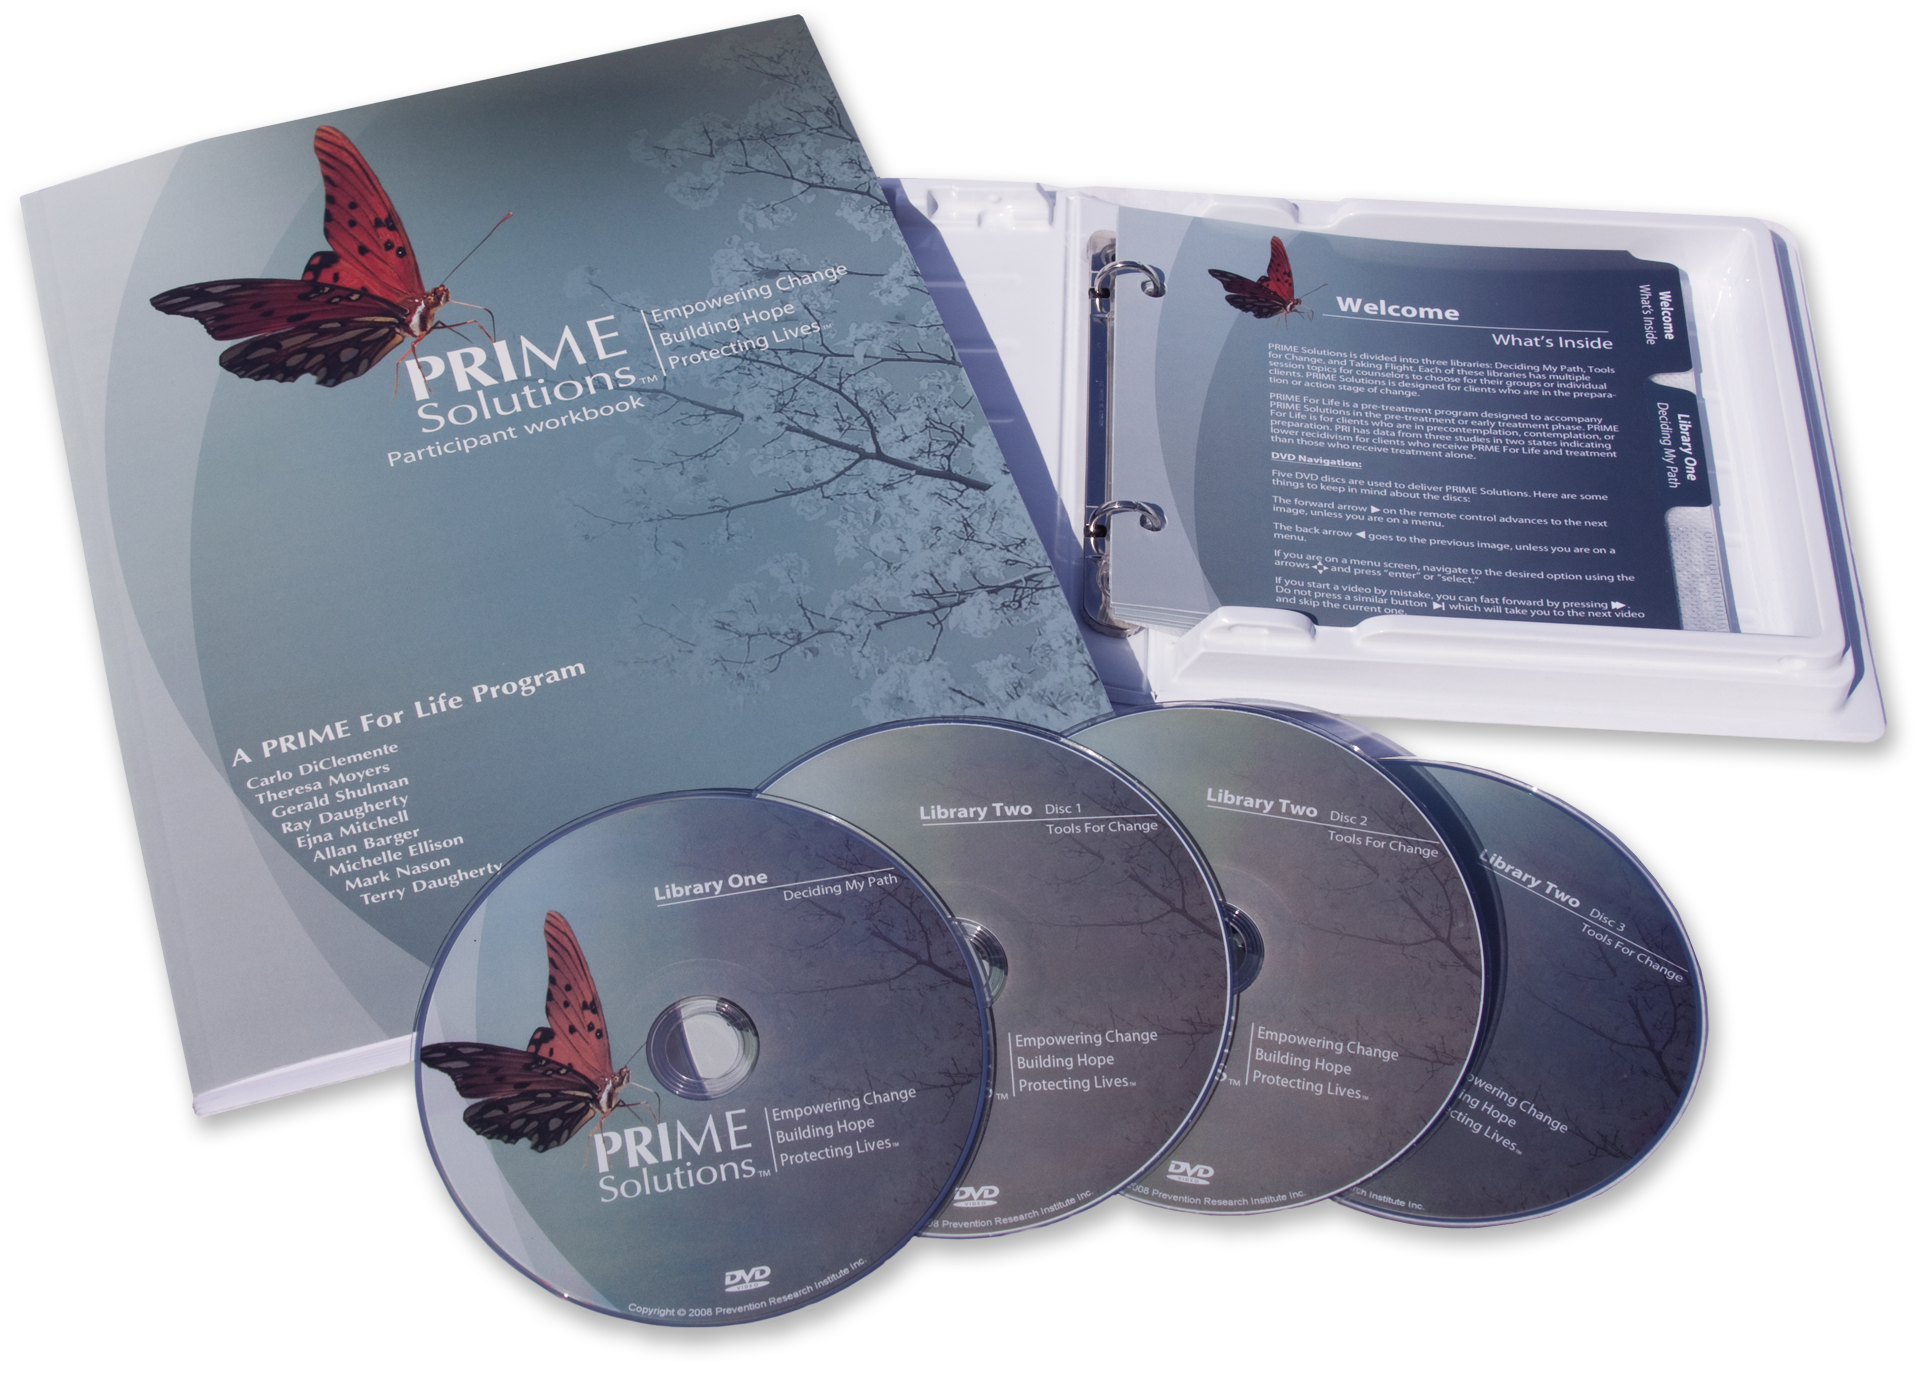 Prime For Life Training materials